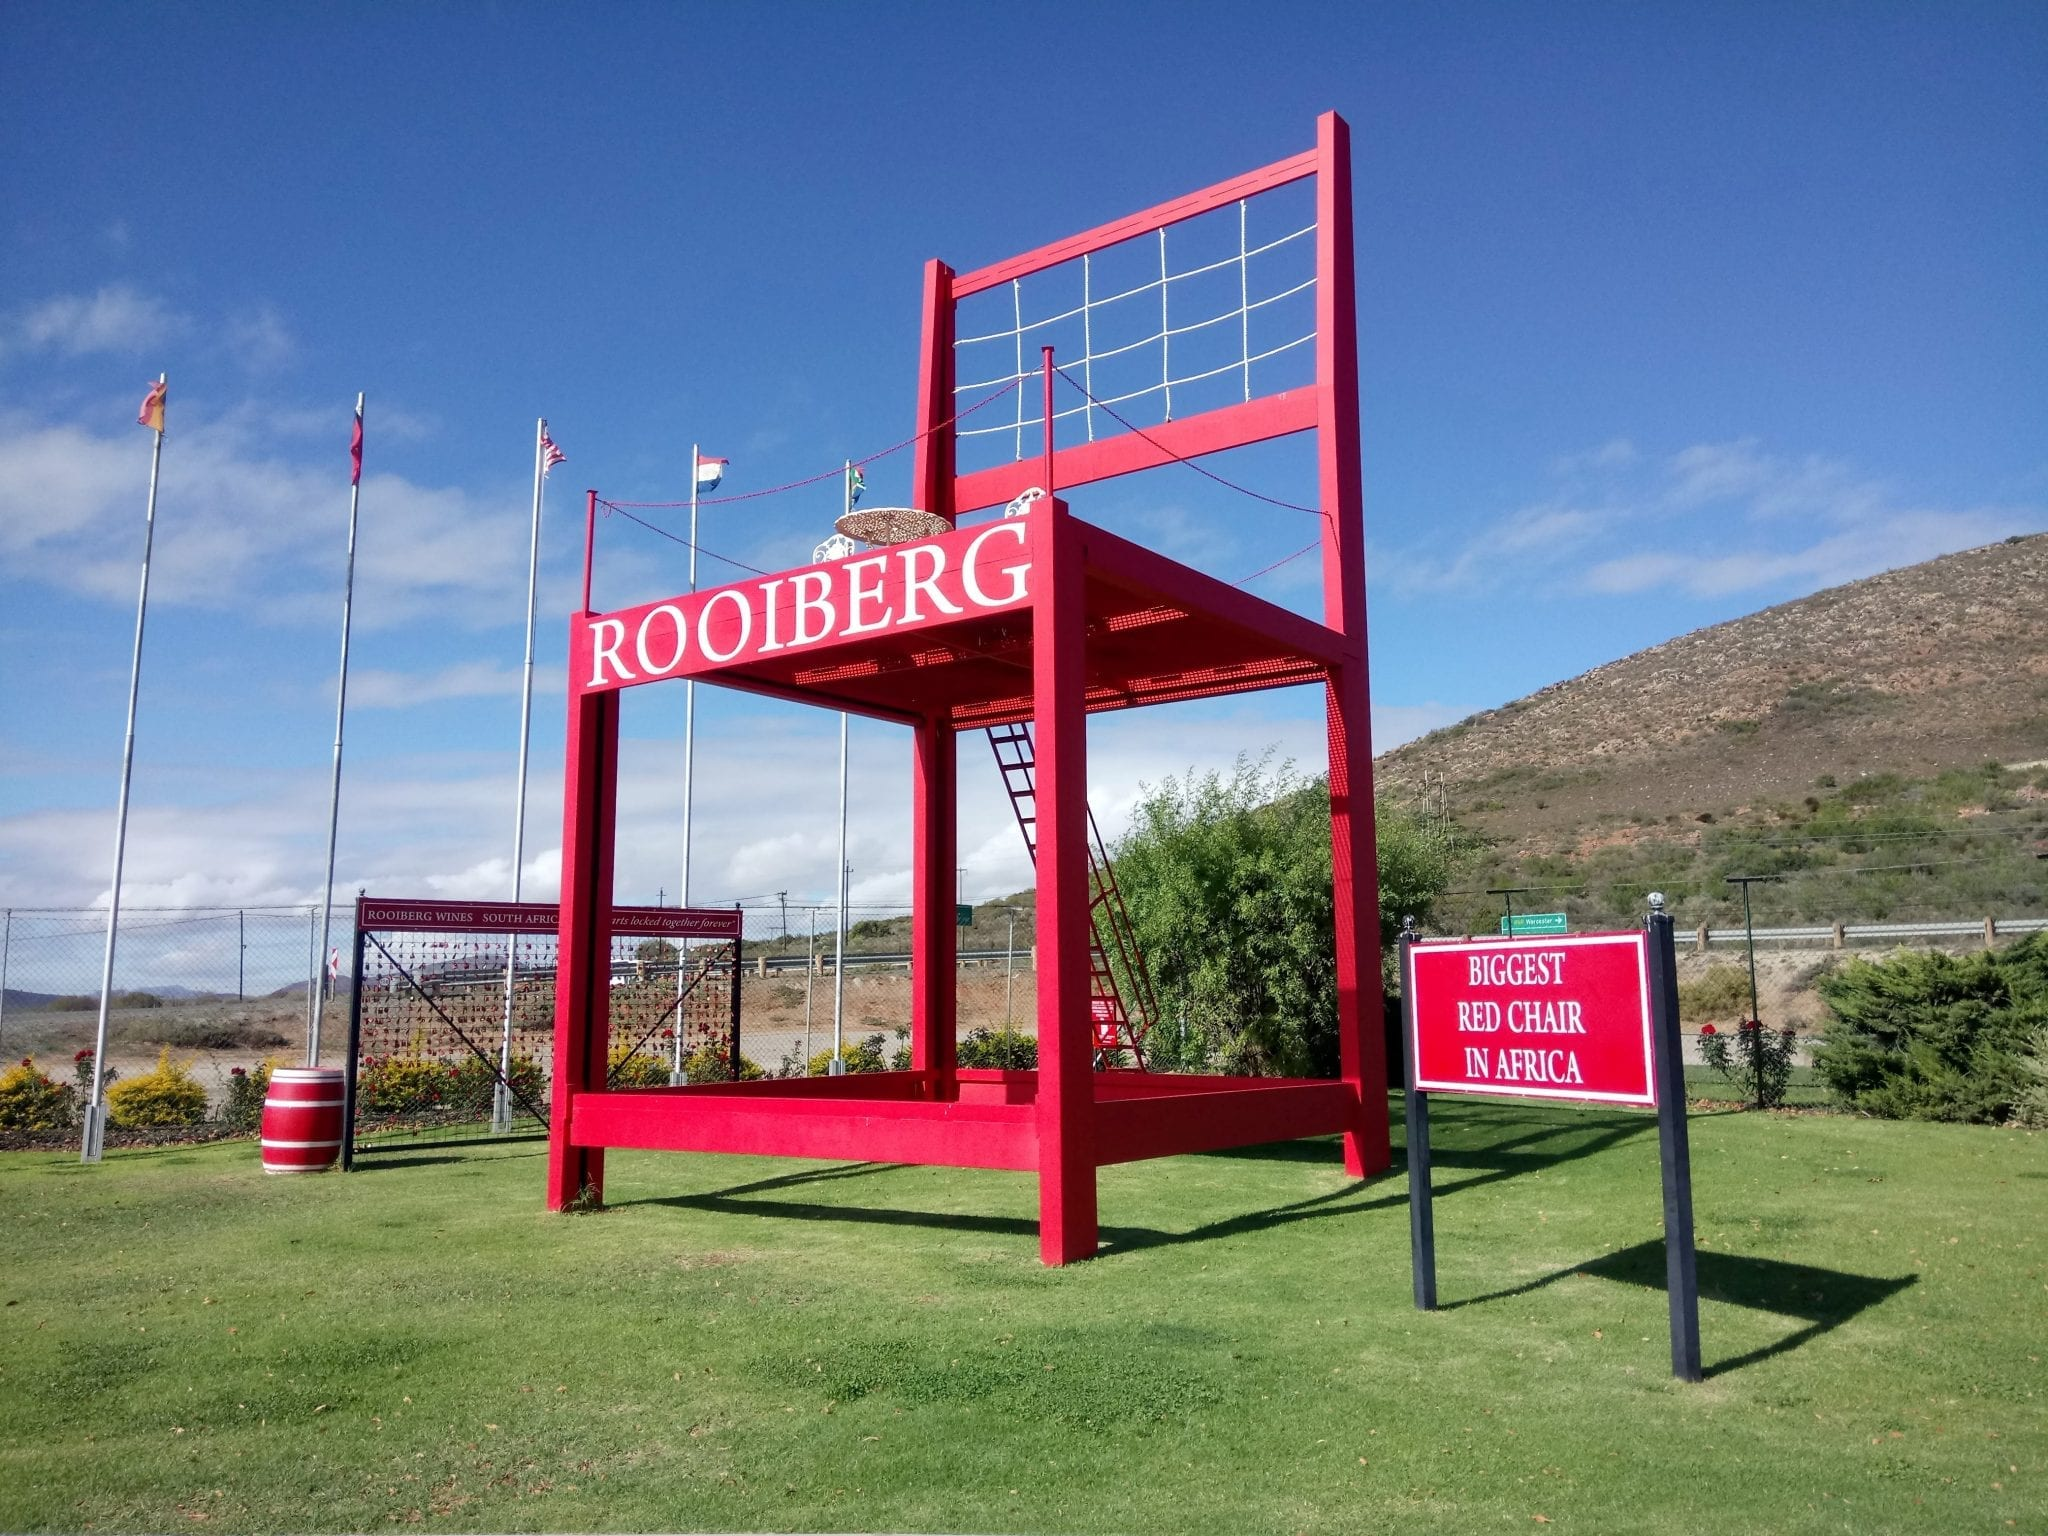 red-chair-rooiberg-winery-roadside-attractions-western-cape